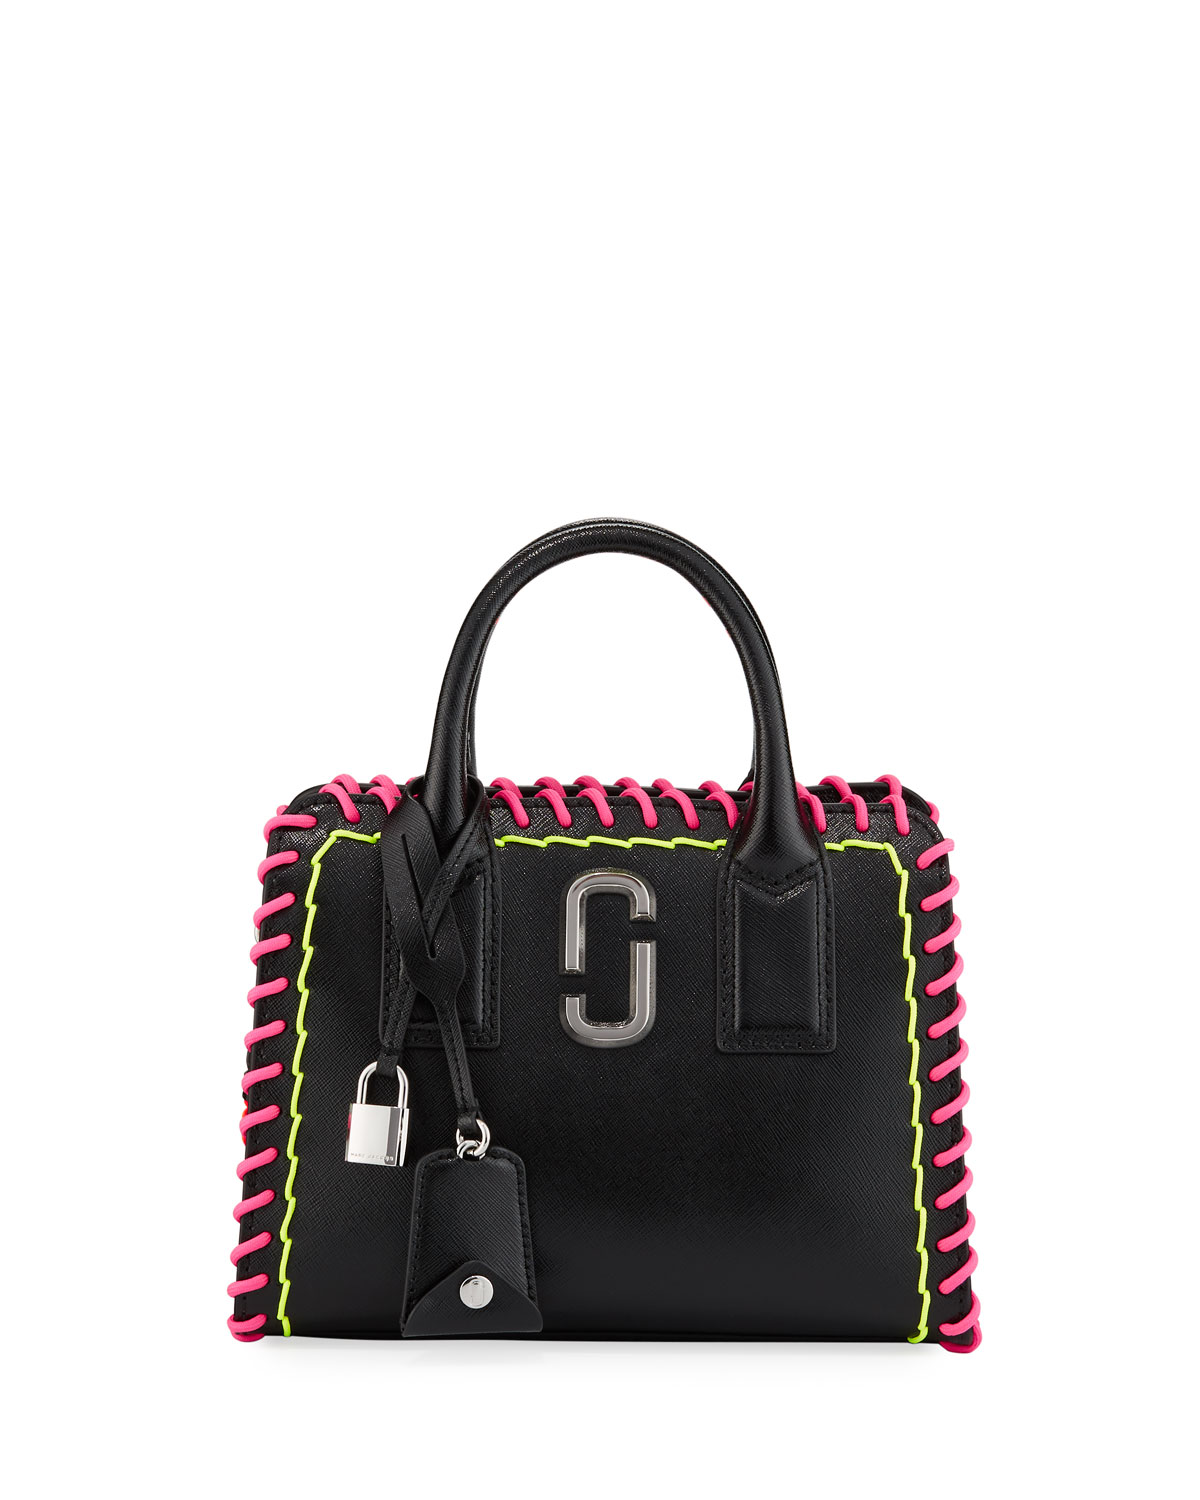 c176be90b2 Marc JacobsLittle Big Shot Whipstitches Tote Bag